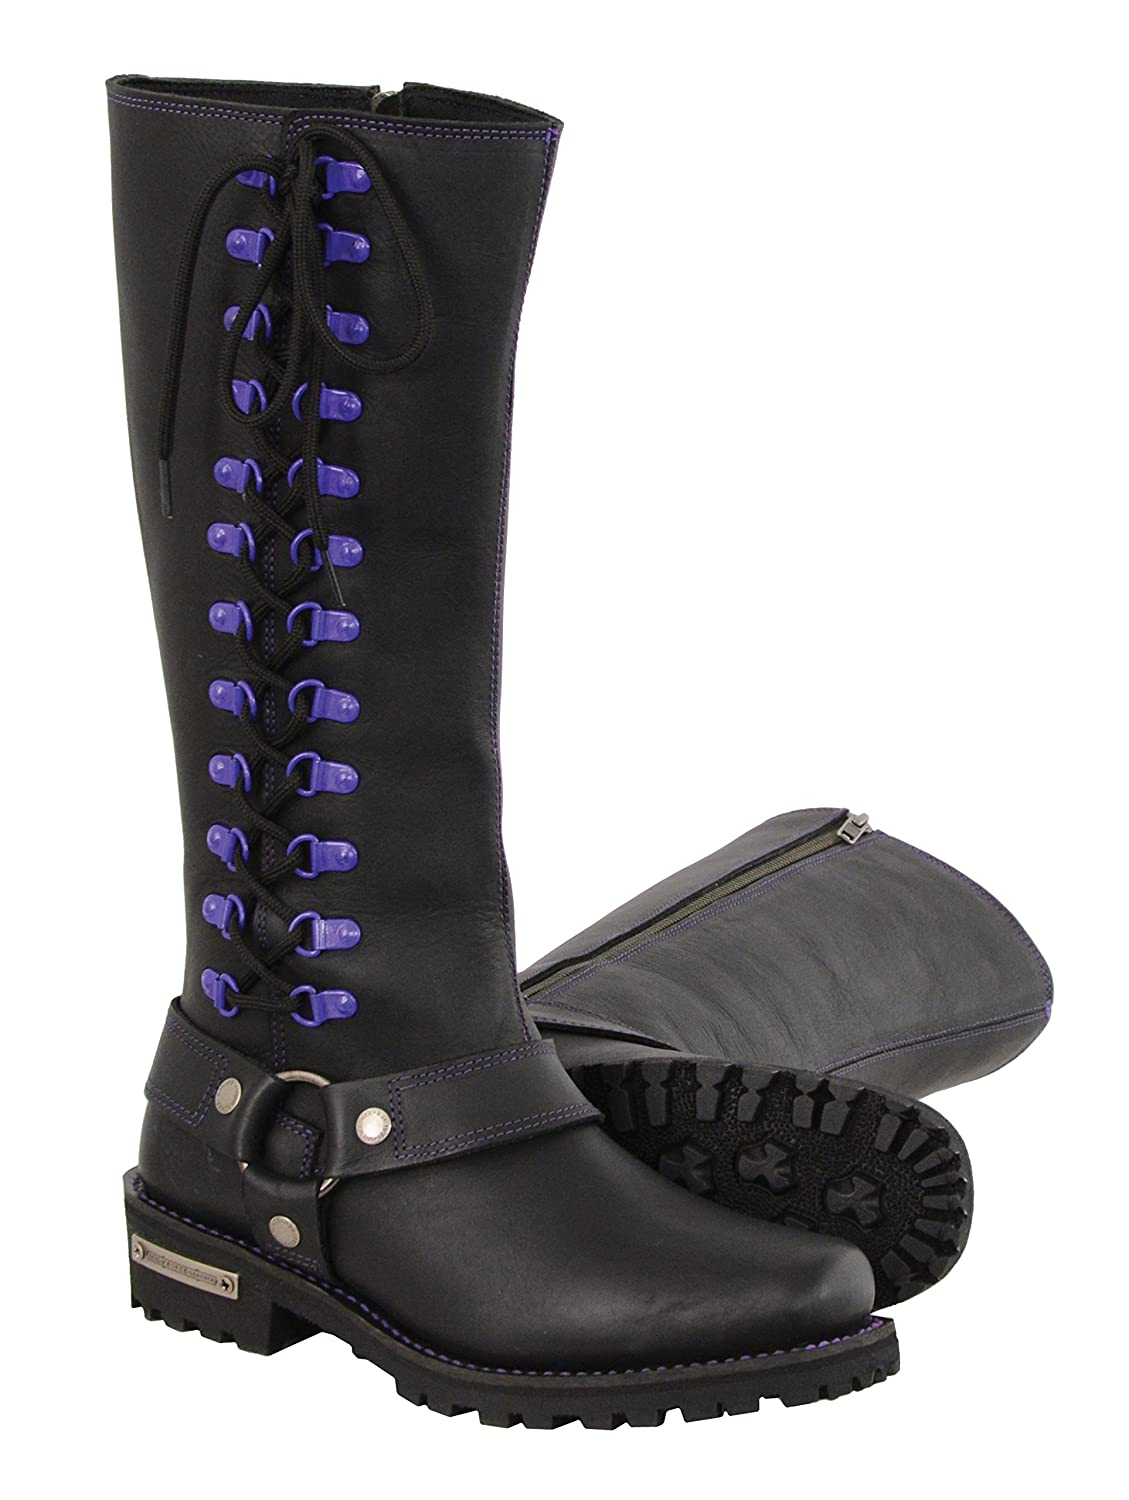 Milwaukee Leather Women's Leather Harness Boots with Purple Accent Loops (Black/Purple, Size 7.5/14') Size 7.5/14) MBL9366-BKPUR-7.5